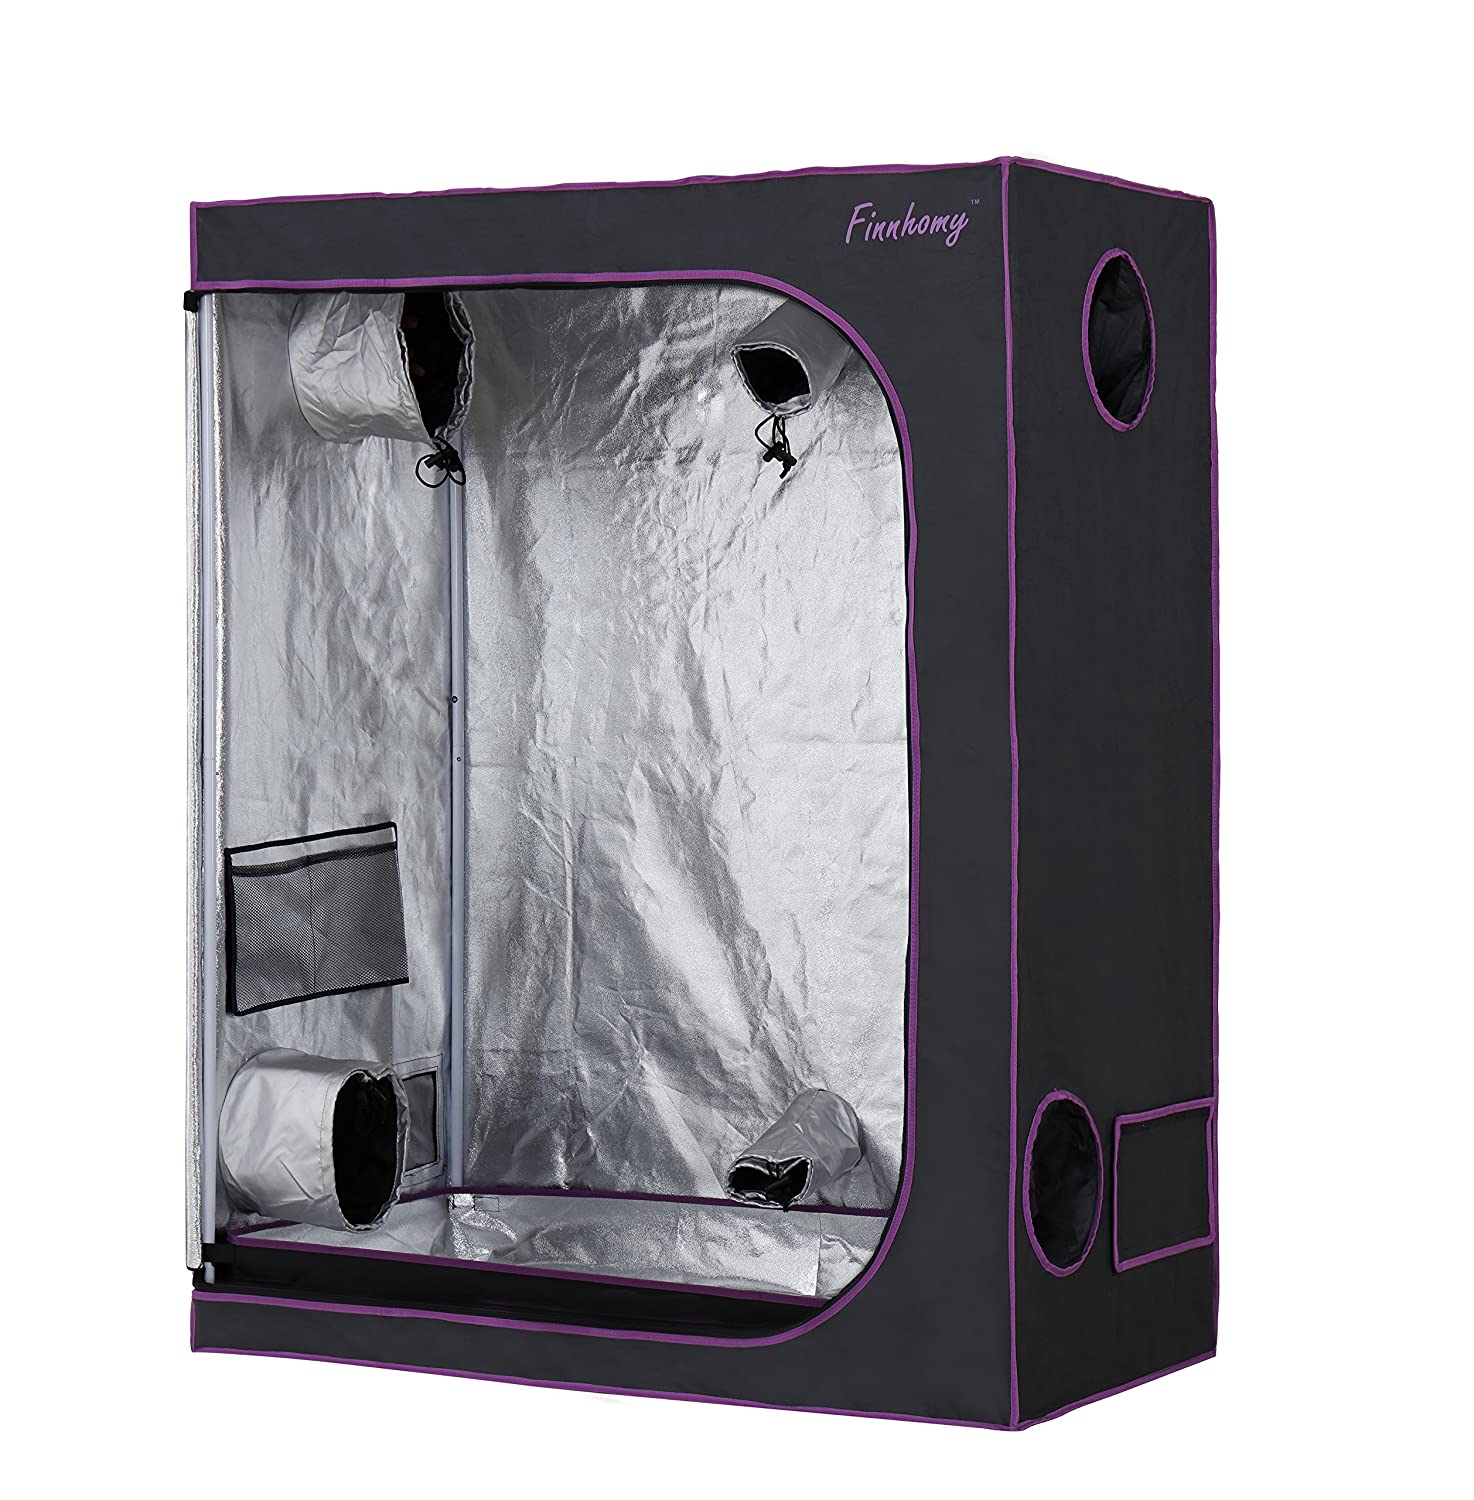 Finnhomy Mylar Hydroponic Grow Tent 48 x24 x60  600D Led Grow Room Greenhouse  sc 1 st  Amazon.com & Amazon.com : High Rise 10u0027 x 10u0027 Grow Tent : Garden u0026 Outdoor